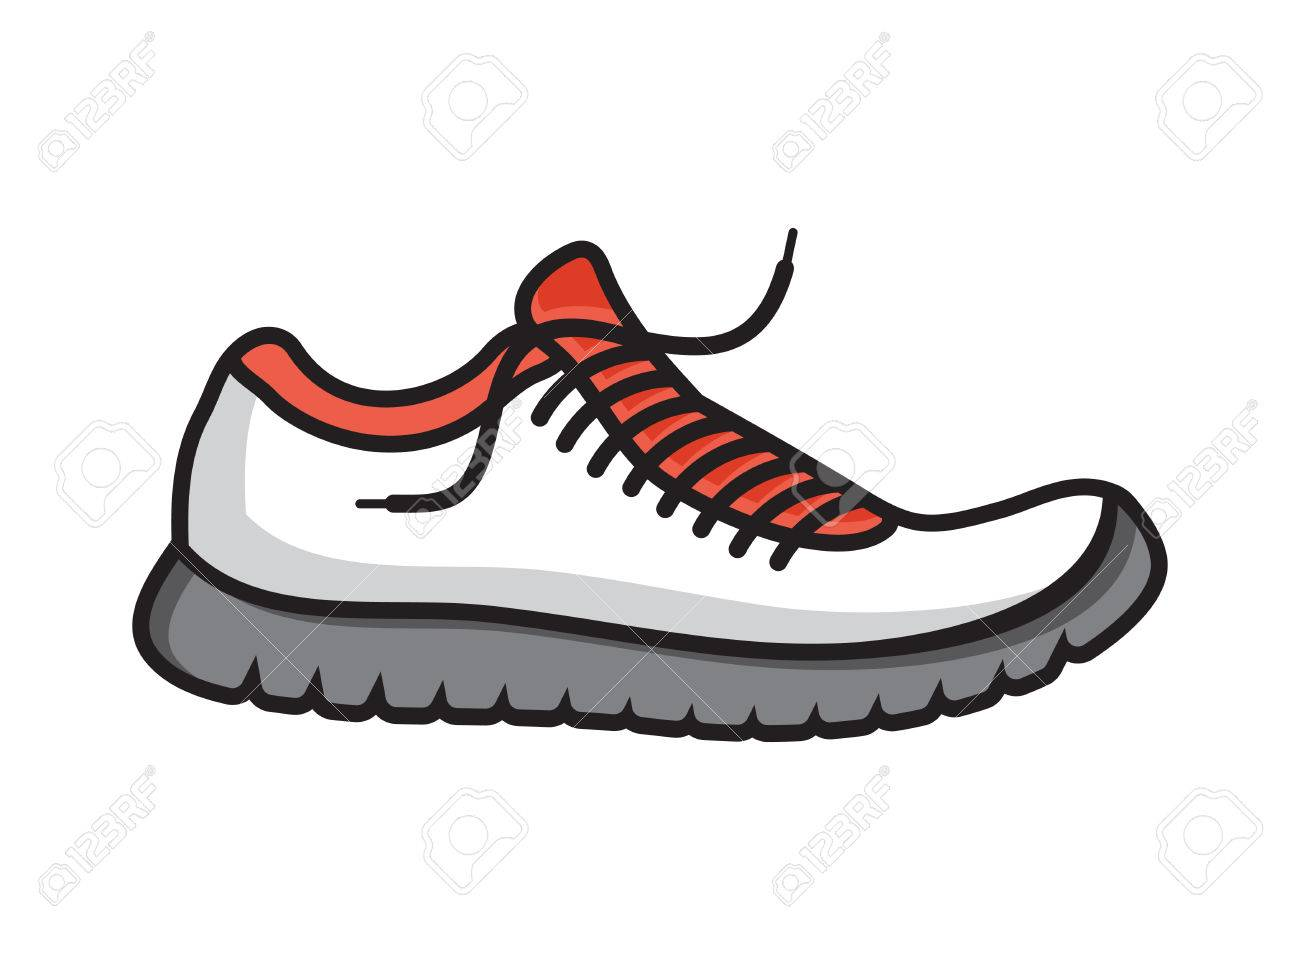 Vector Free ClipartsVectorsAnd Shoes Running Stock Icon Royalty trxhdCQs